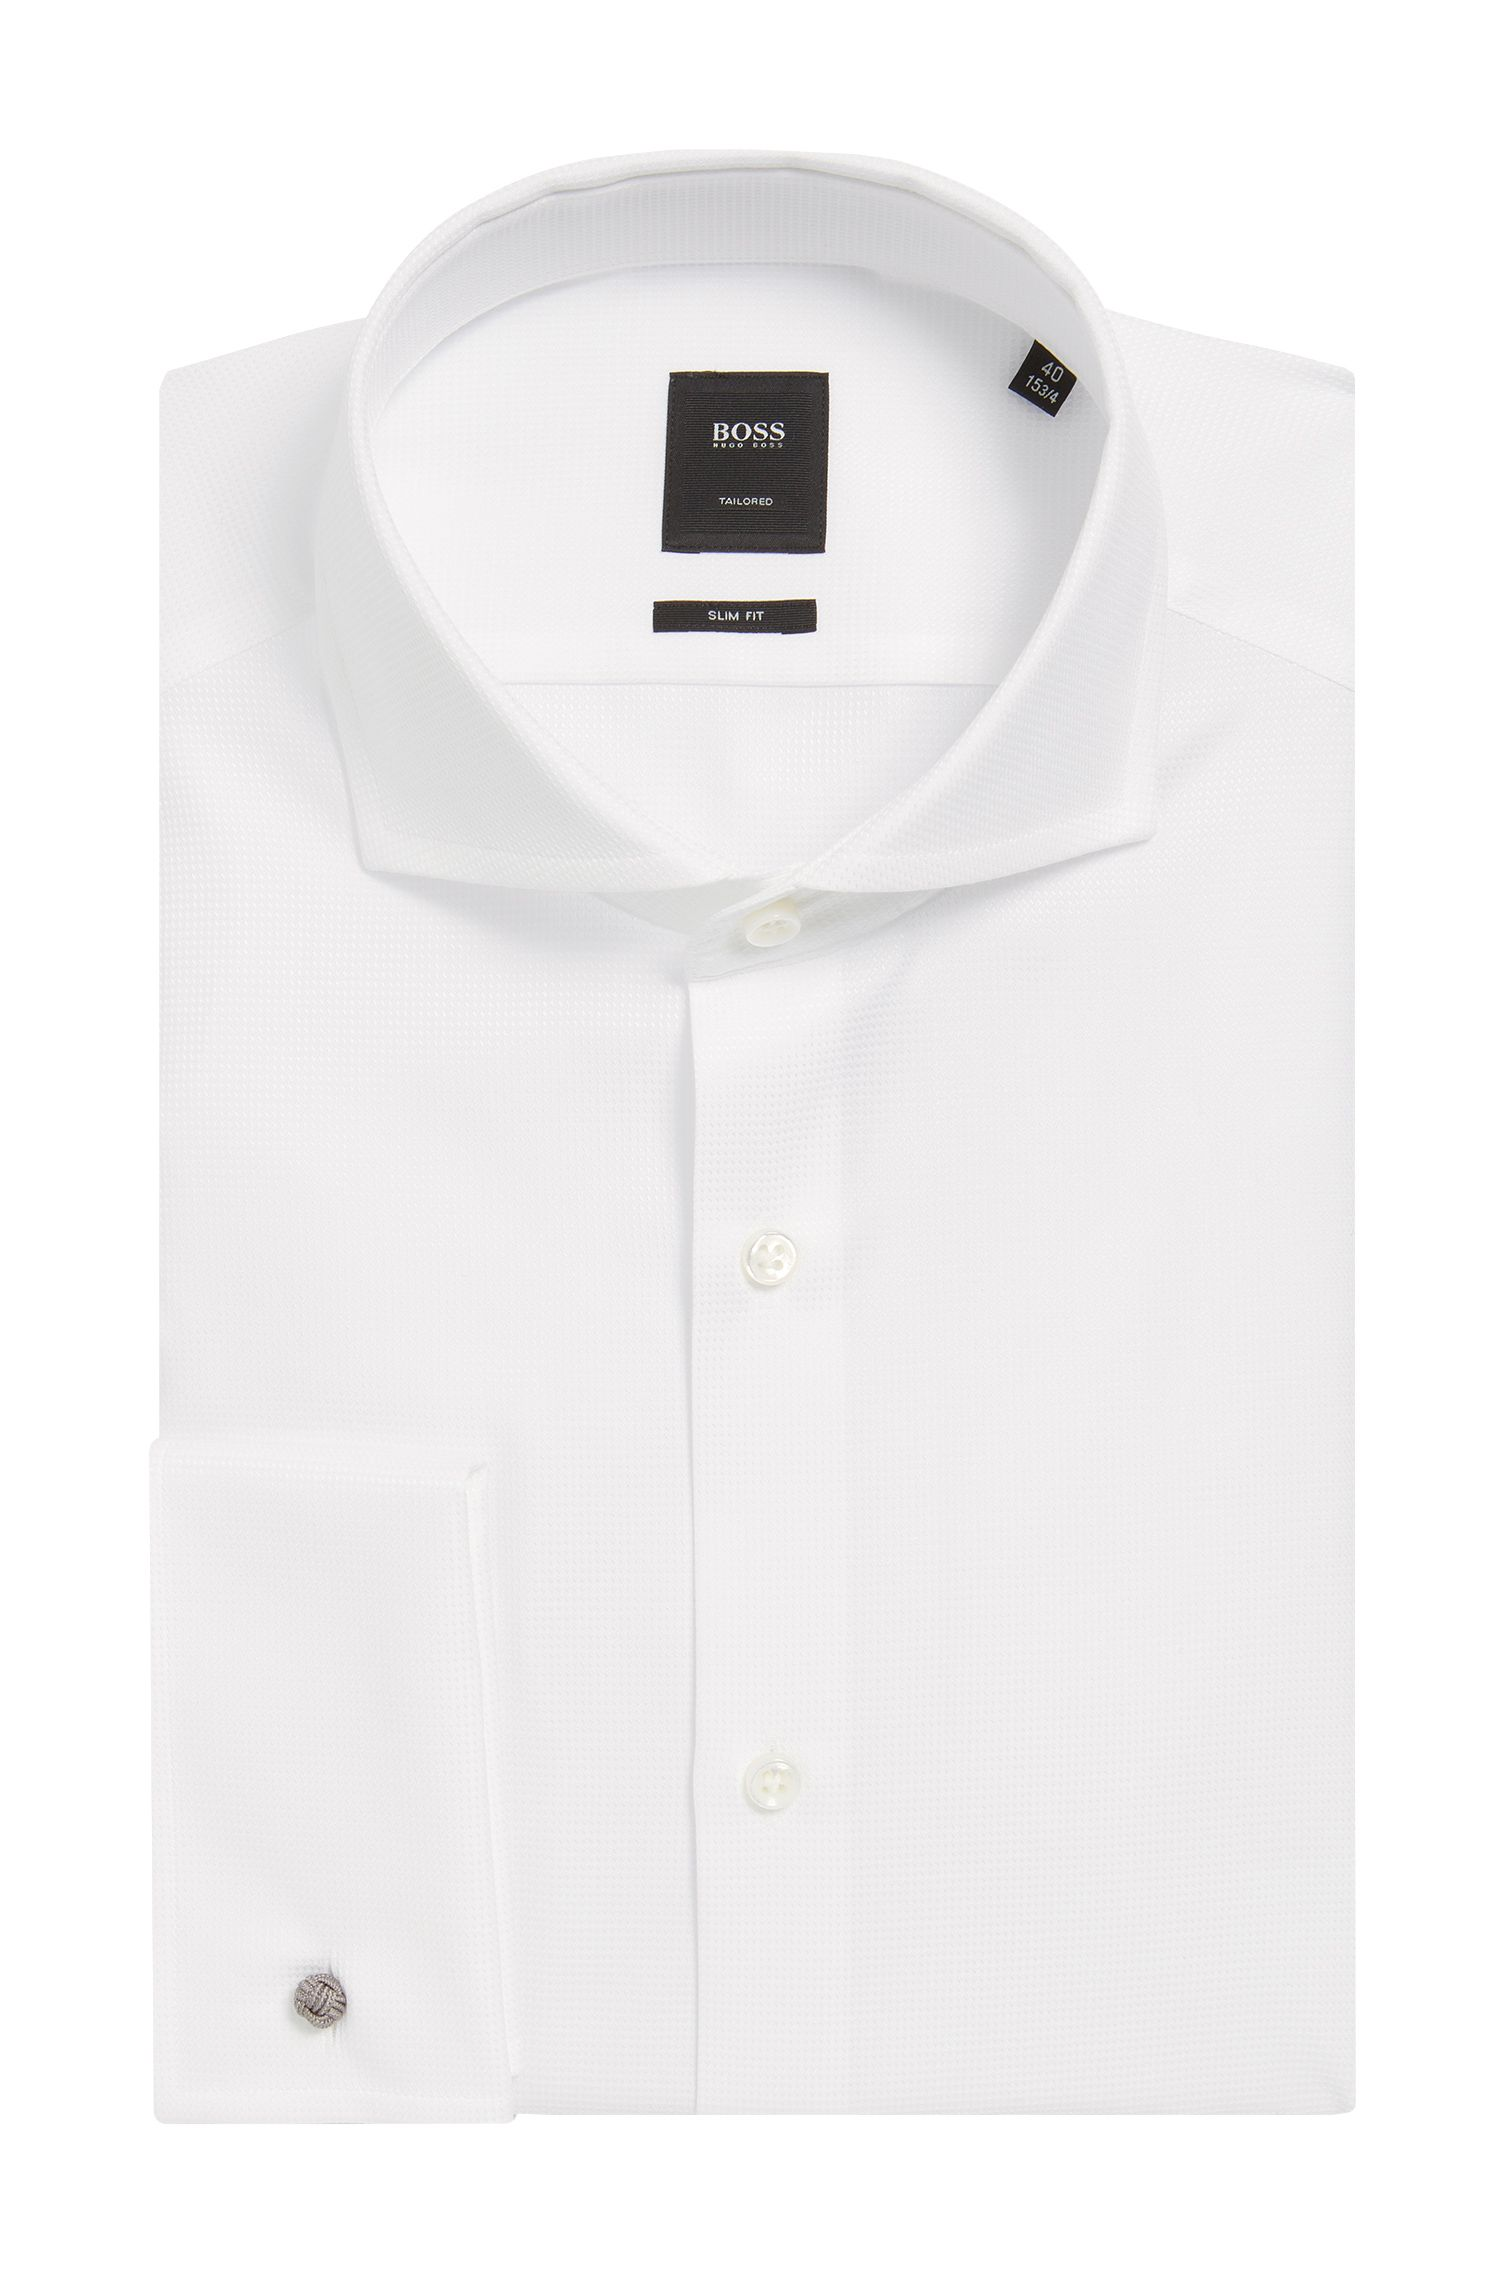 Dobby Cotton Dress Shirt, Slim Fit | T-Yacob